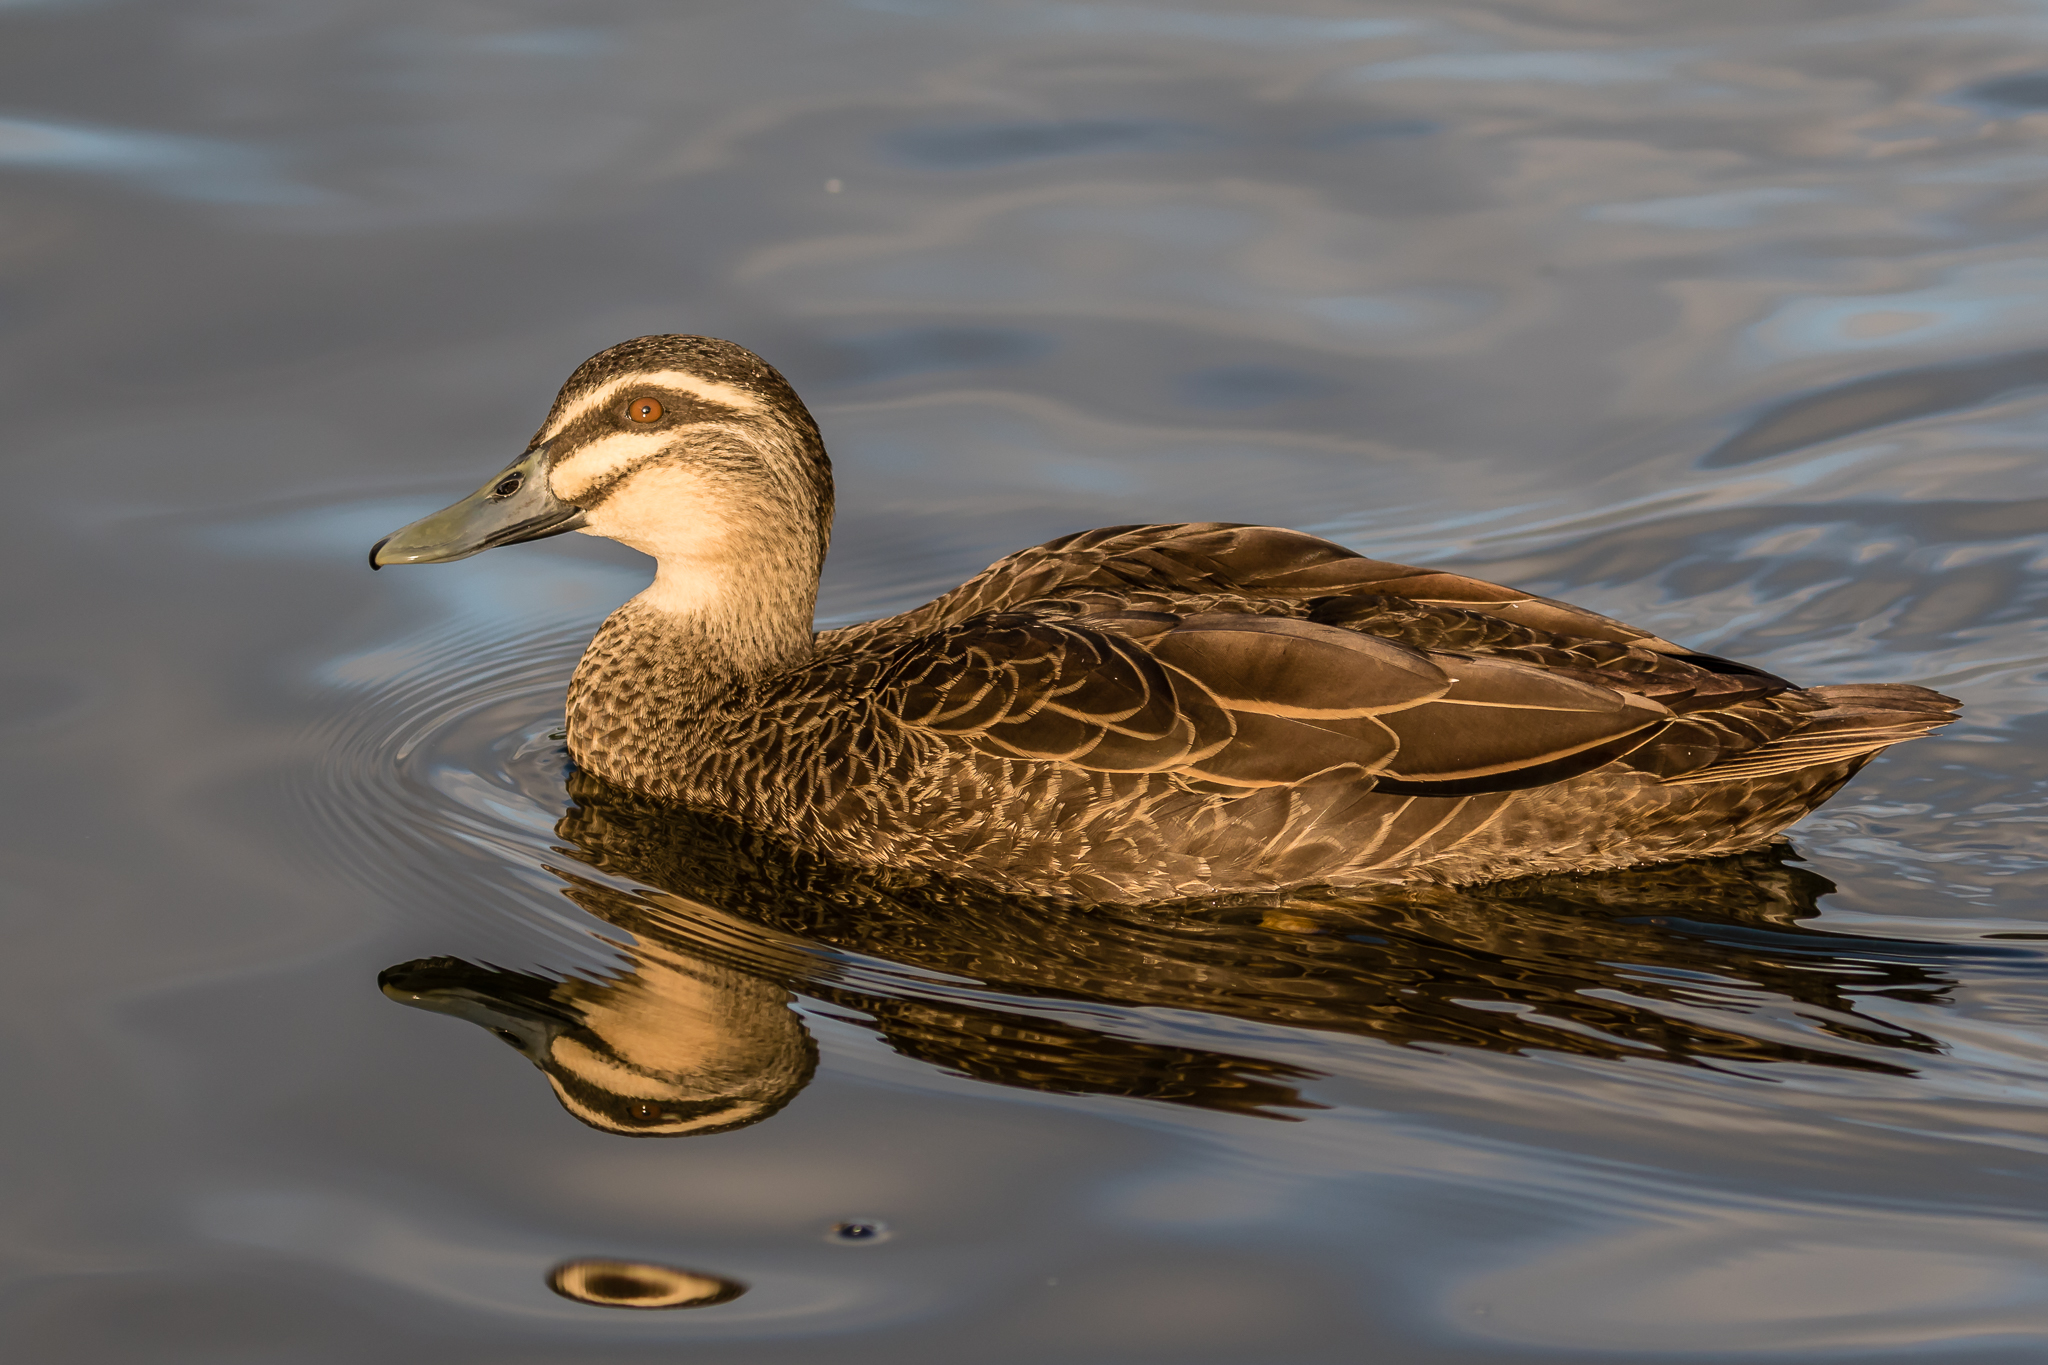 The common Pacific Black Duck (60 cm) is found at most Australian wetlands. They consume a mainly vegetarian diet.